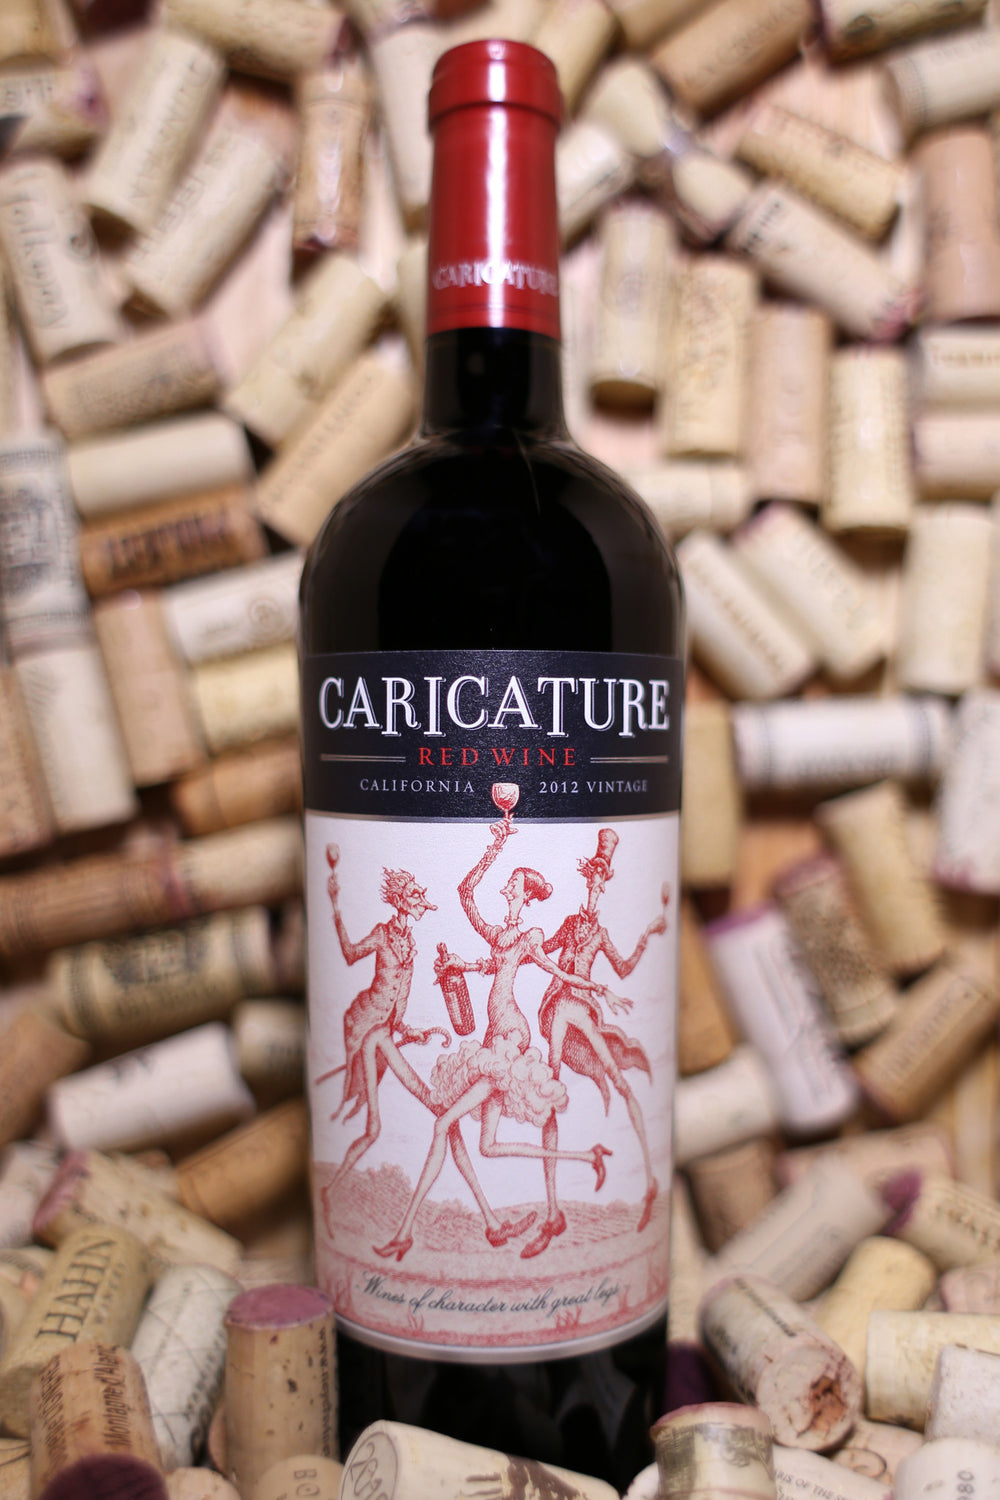 Caricature Red Blend California 2013